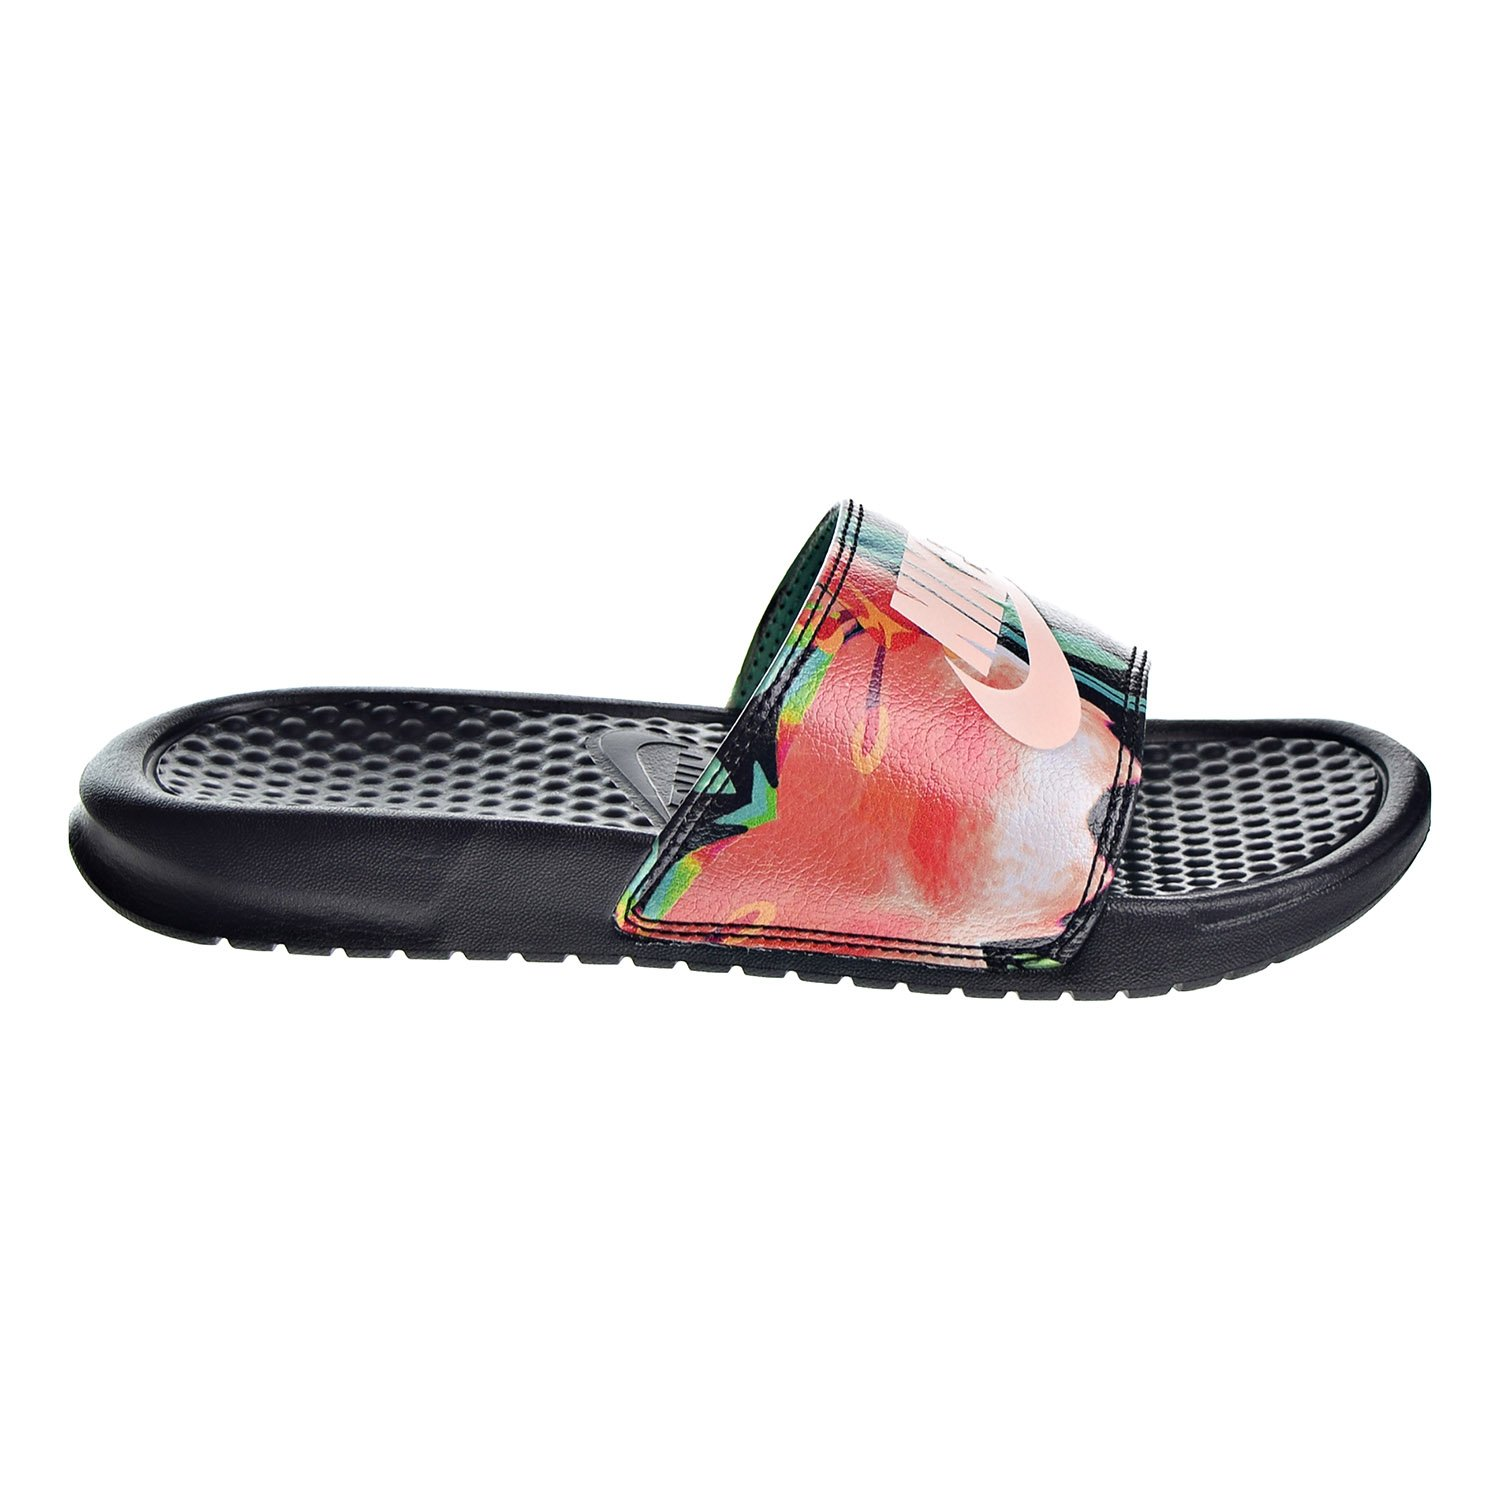 NIKE Women's Benassi Just Do It. Sandal Black B00SRSLHEK 5 B(M) US|Black/Crimson Tint/Green Glow